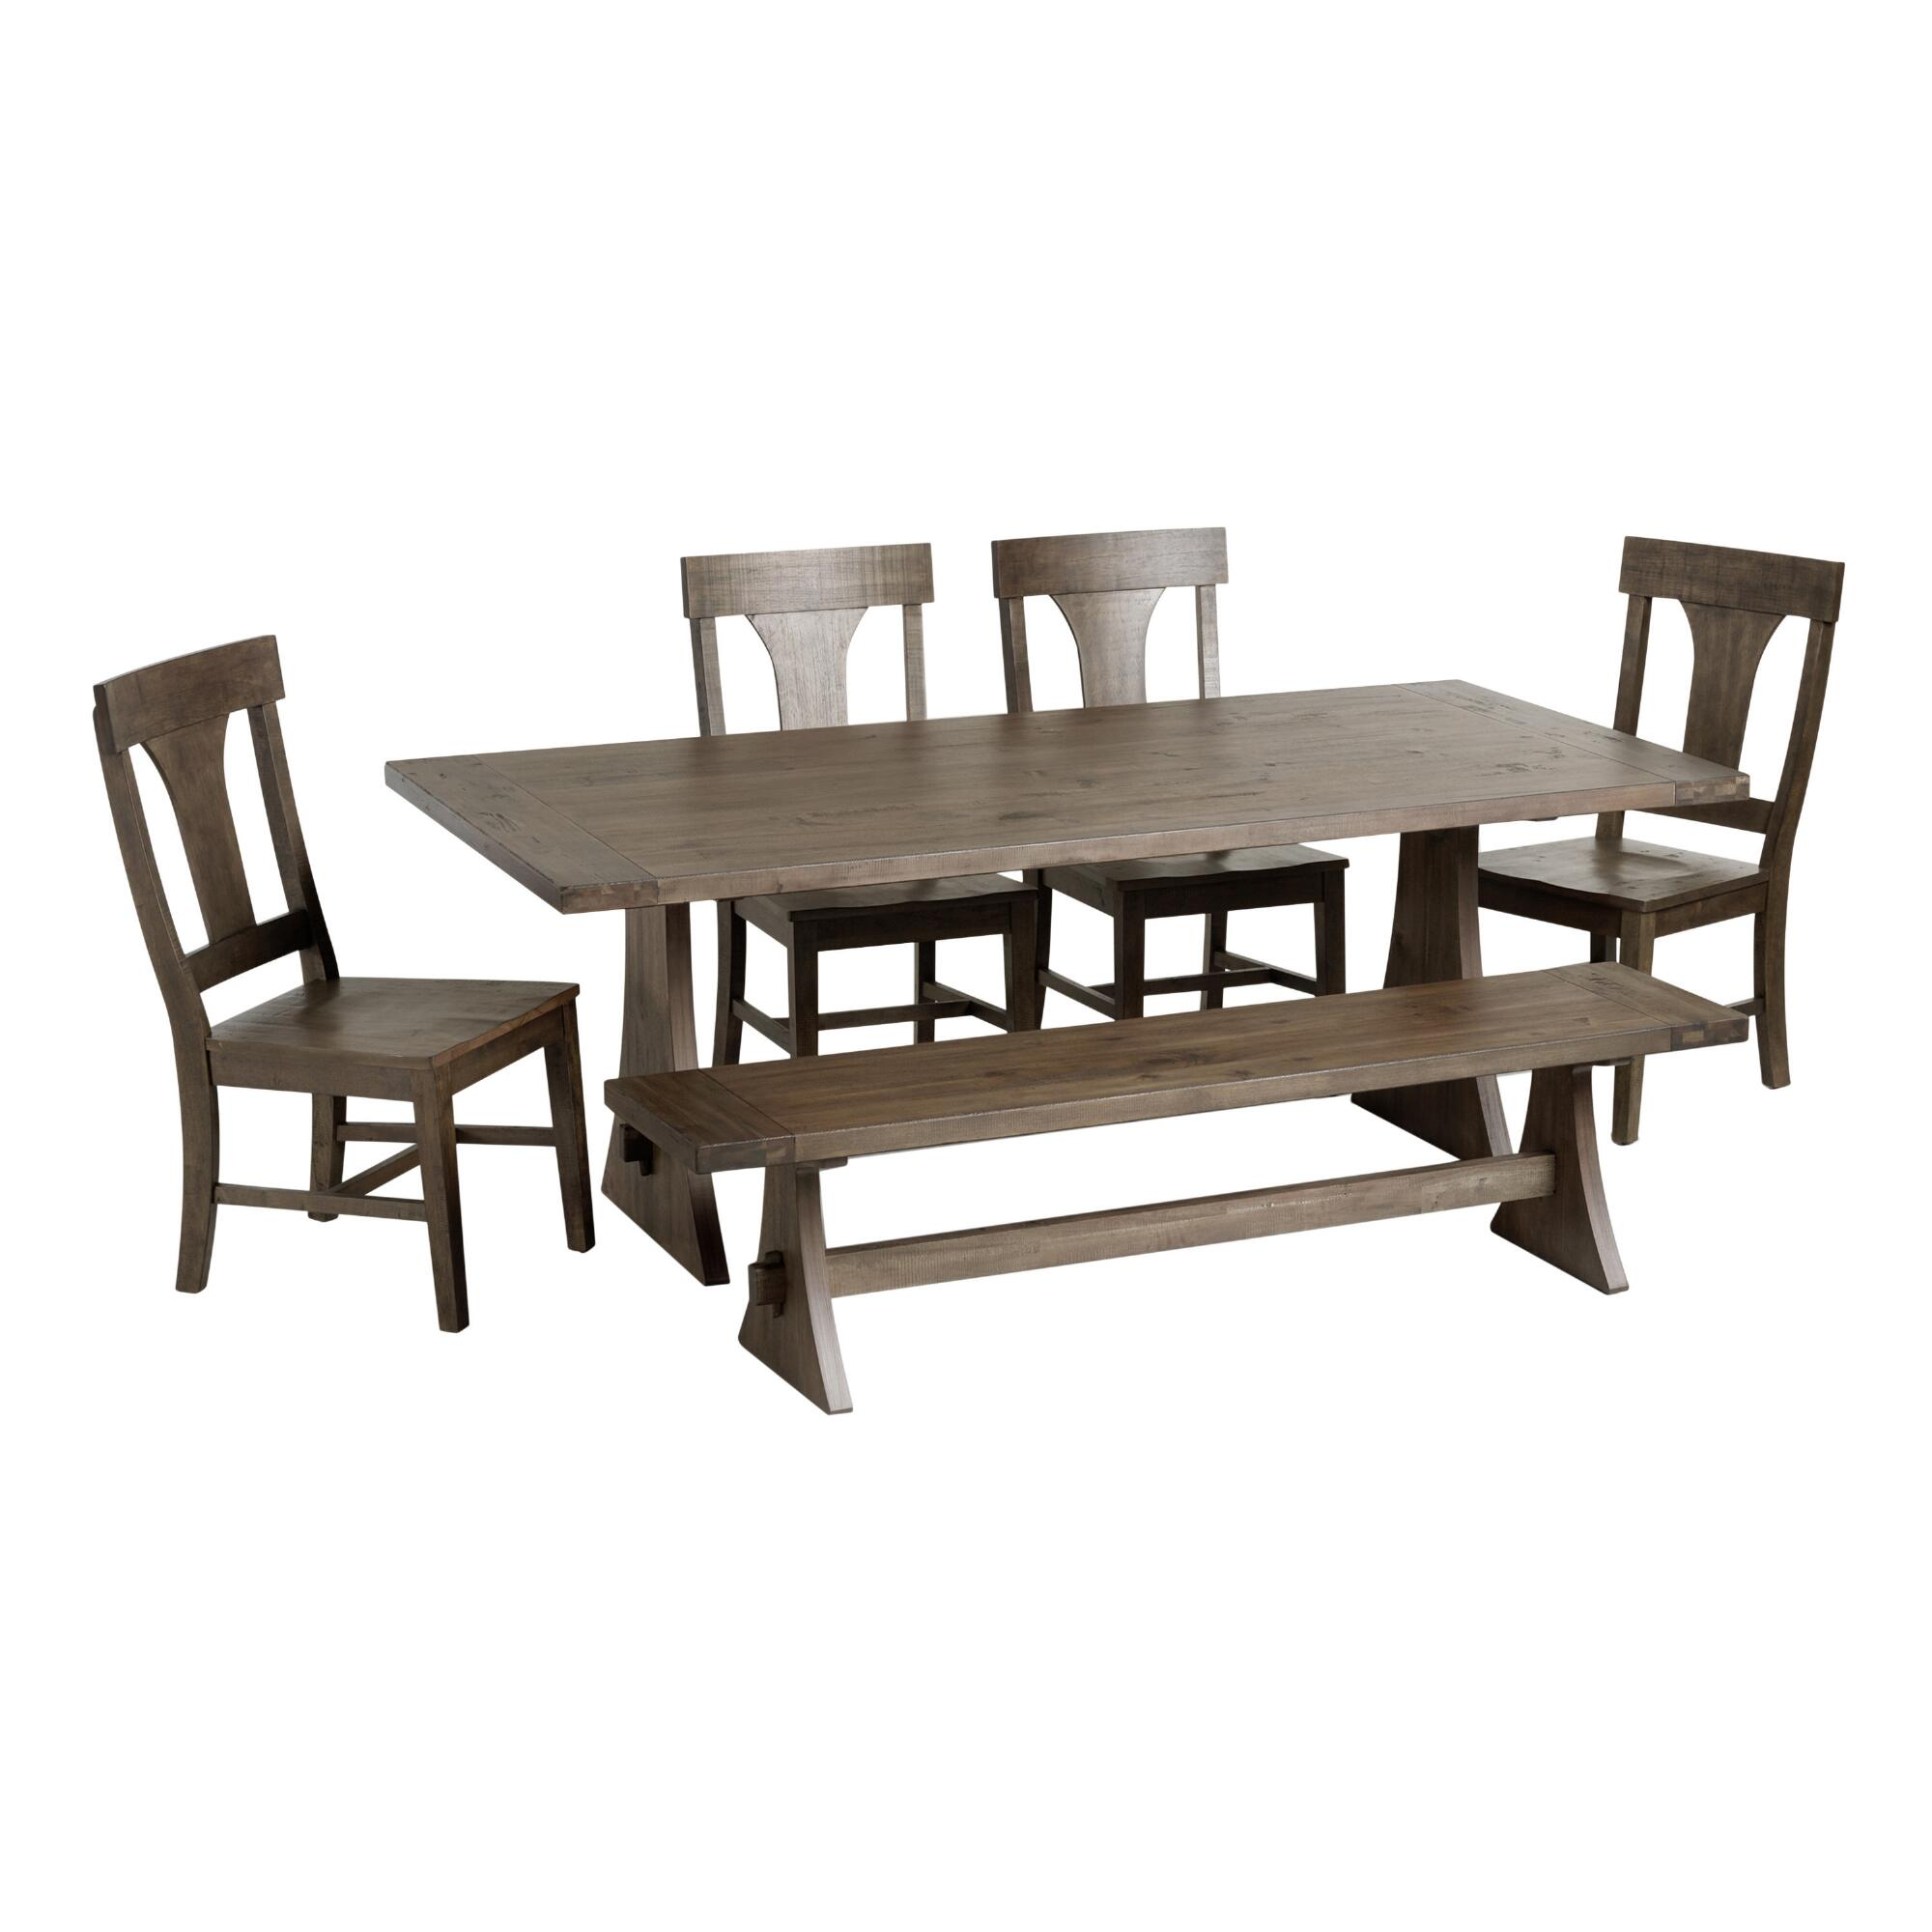 Brinley Dining Collection. Dining Room Furniture Sets  Table   Chairs   World Market